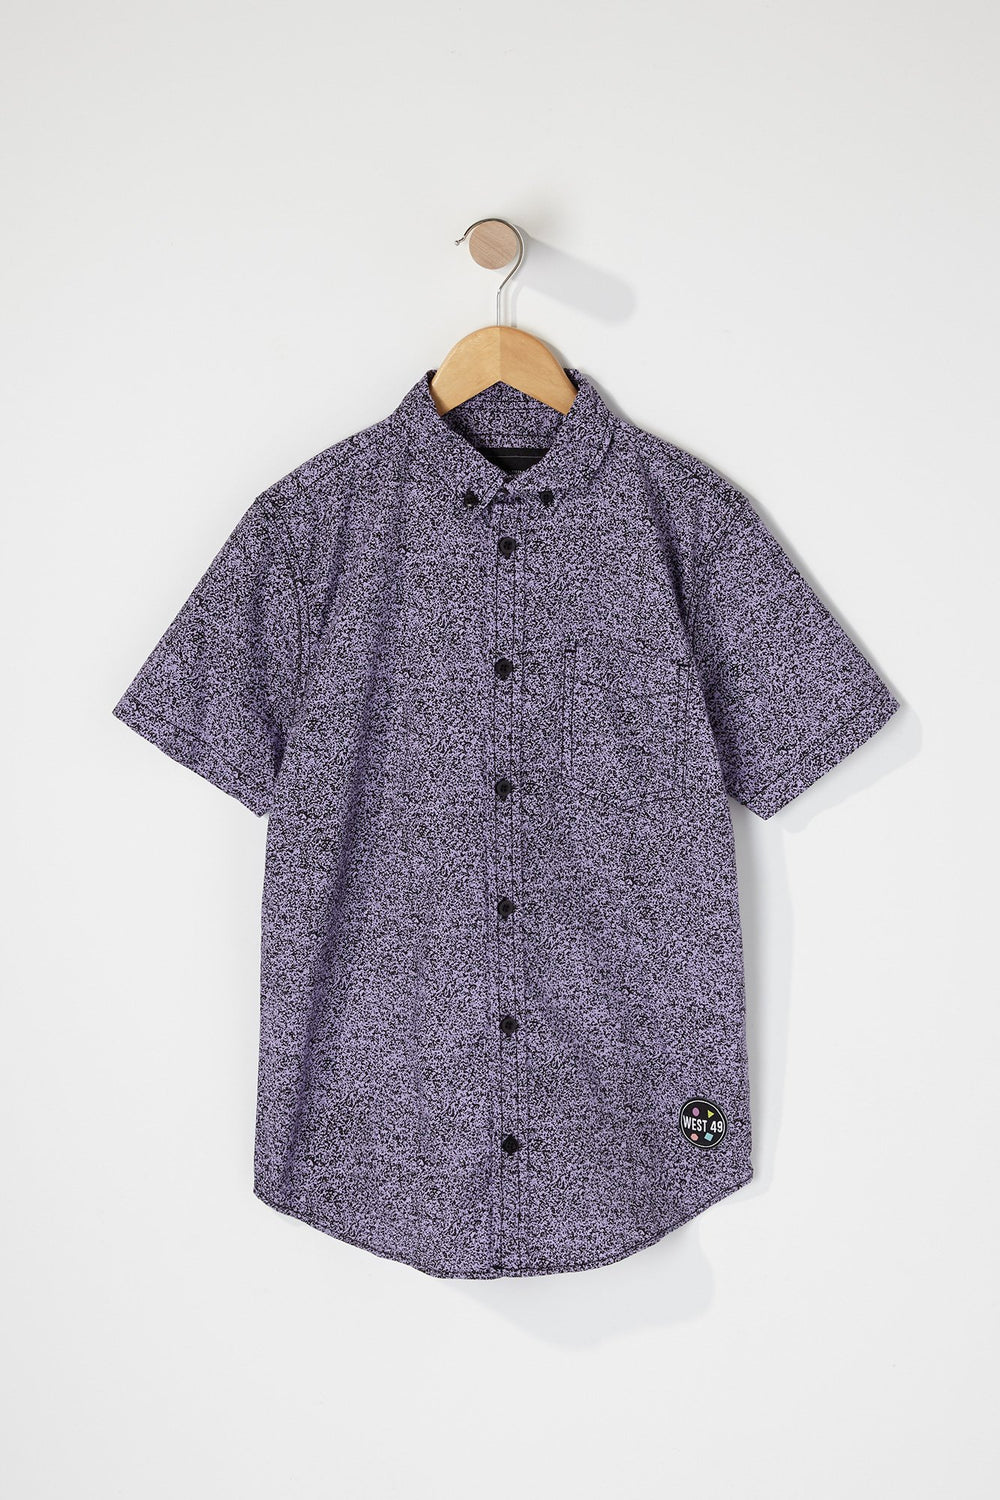 West49 Boys Cotton Speckle Print Button Up Shirt Purple